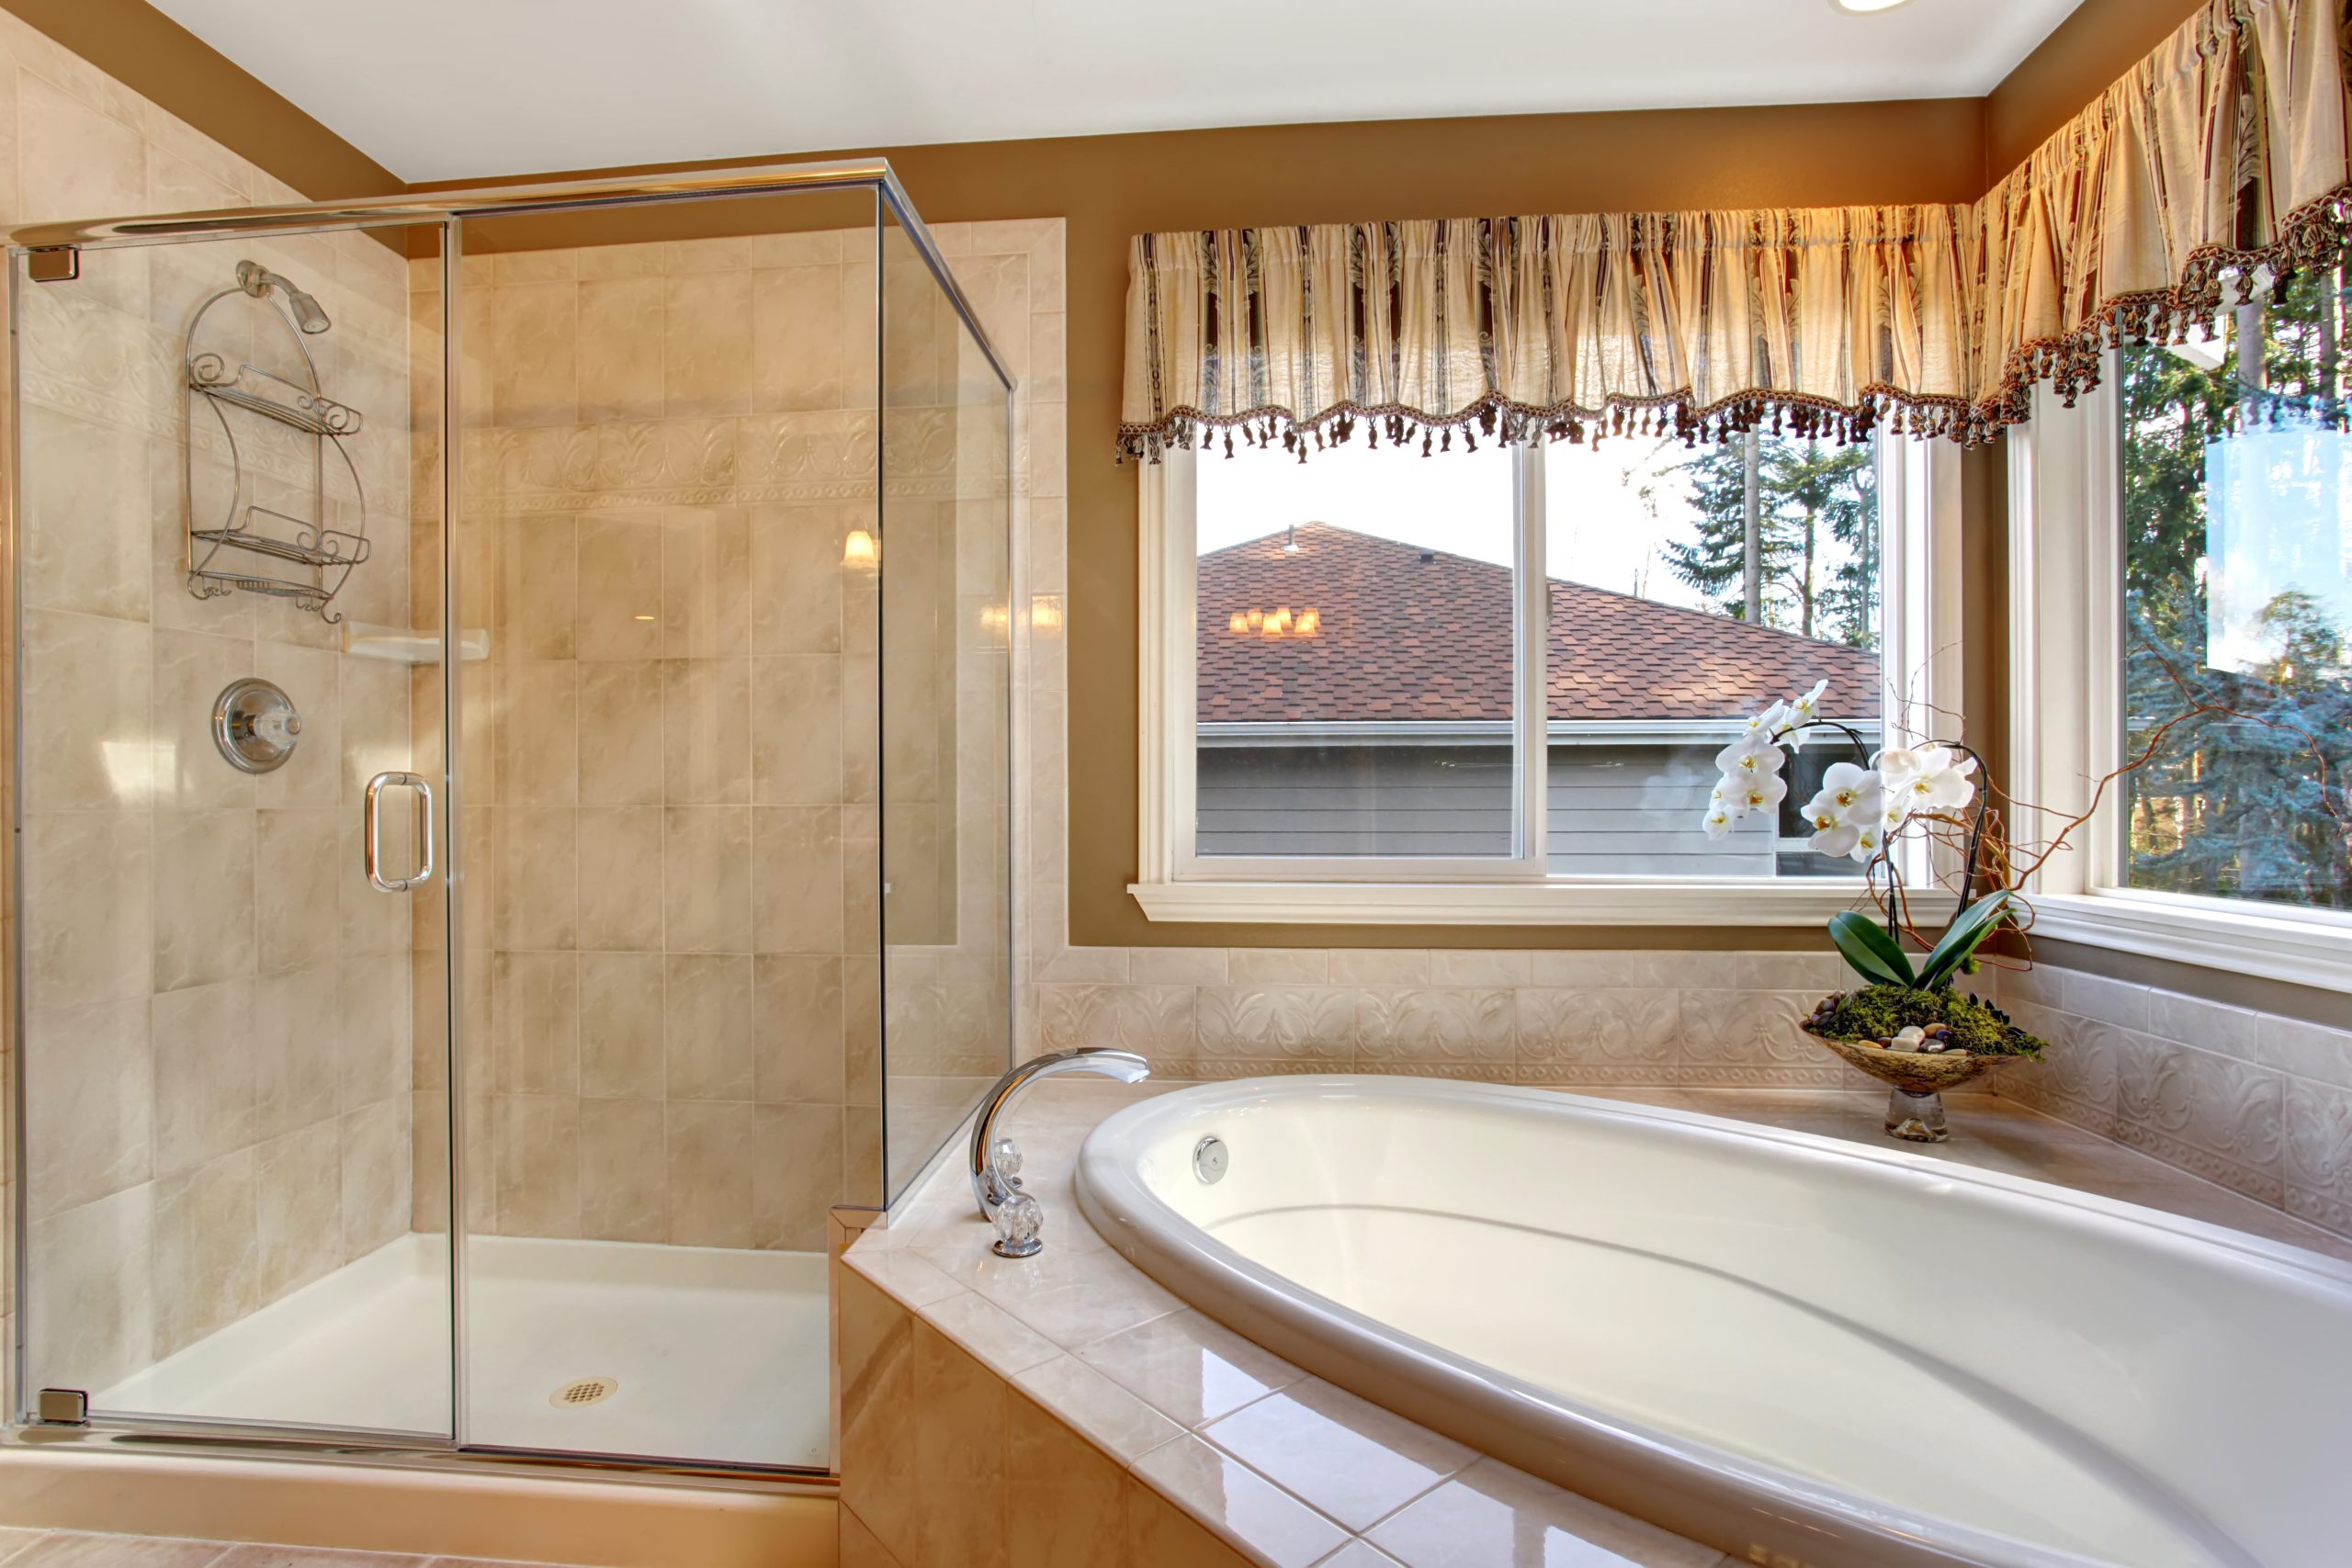 An example of a frameless shower door installation